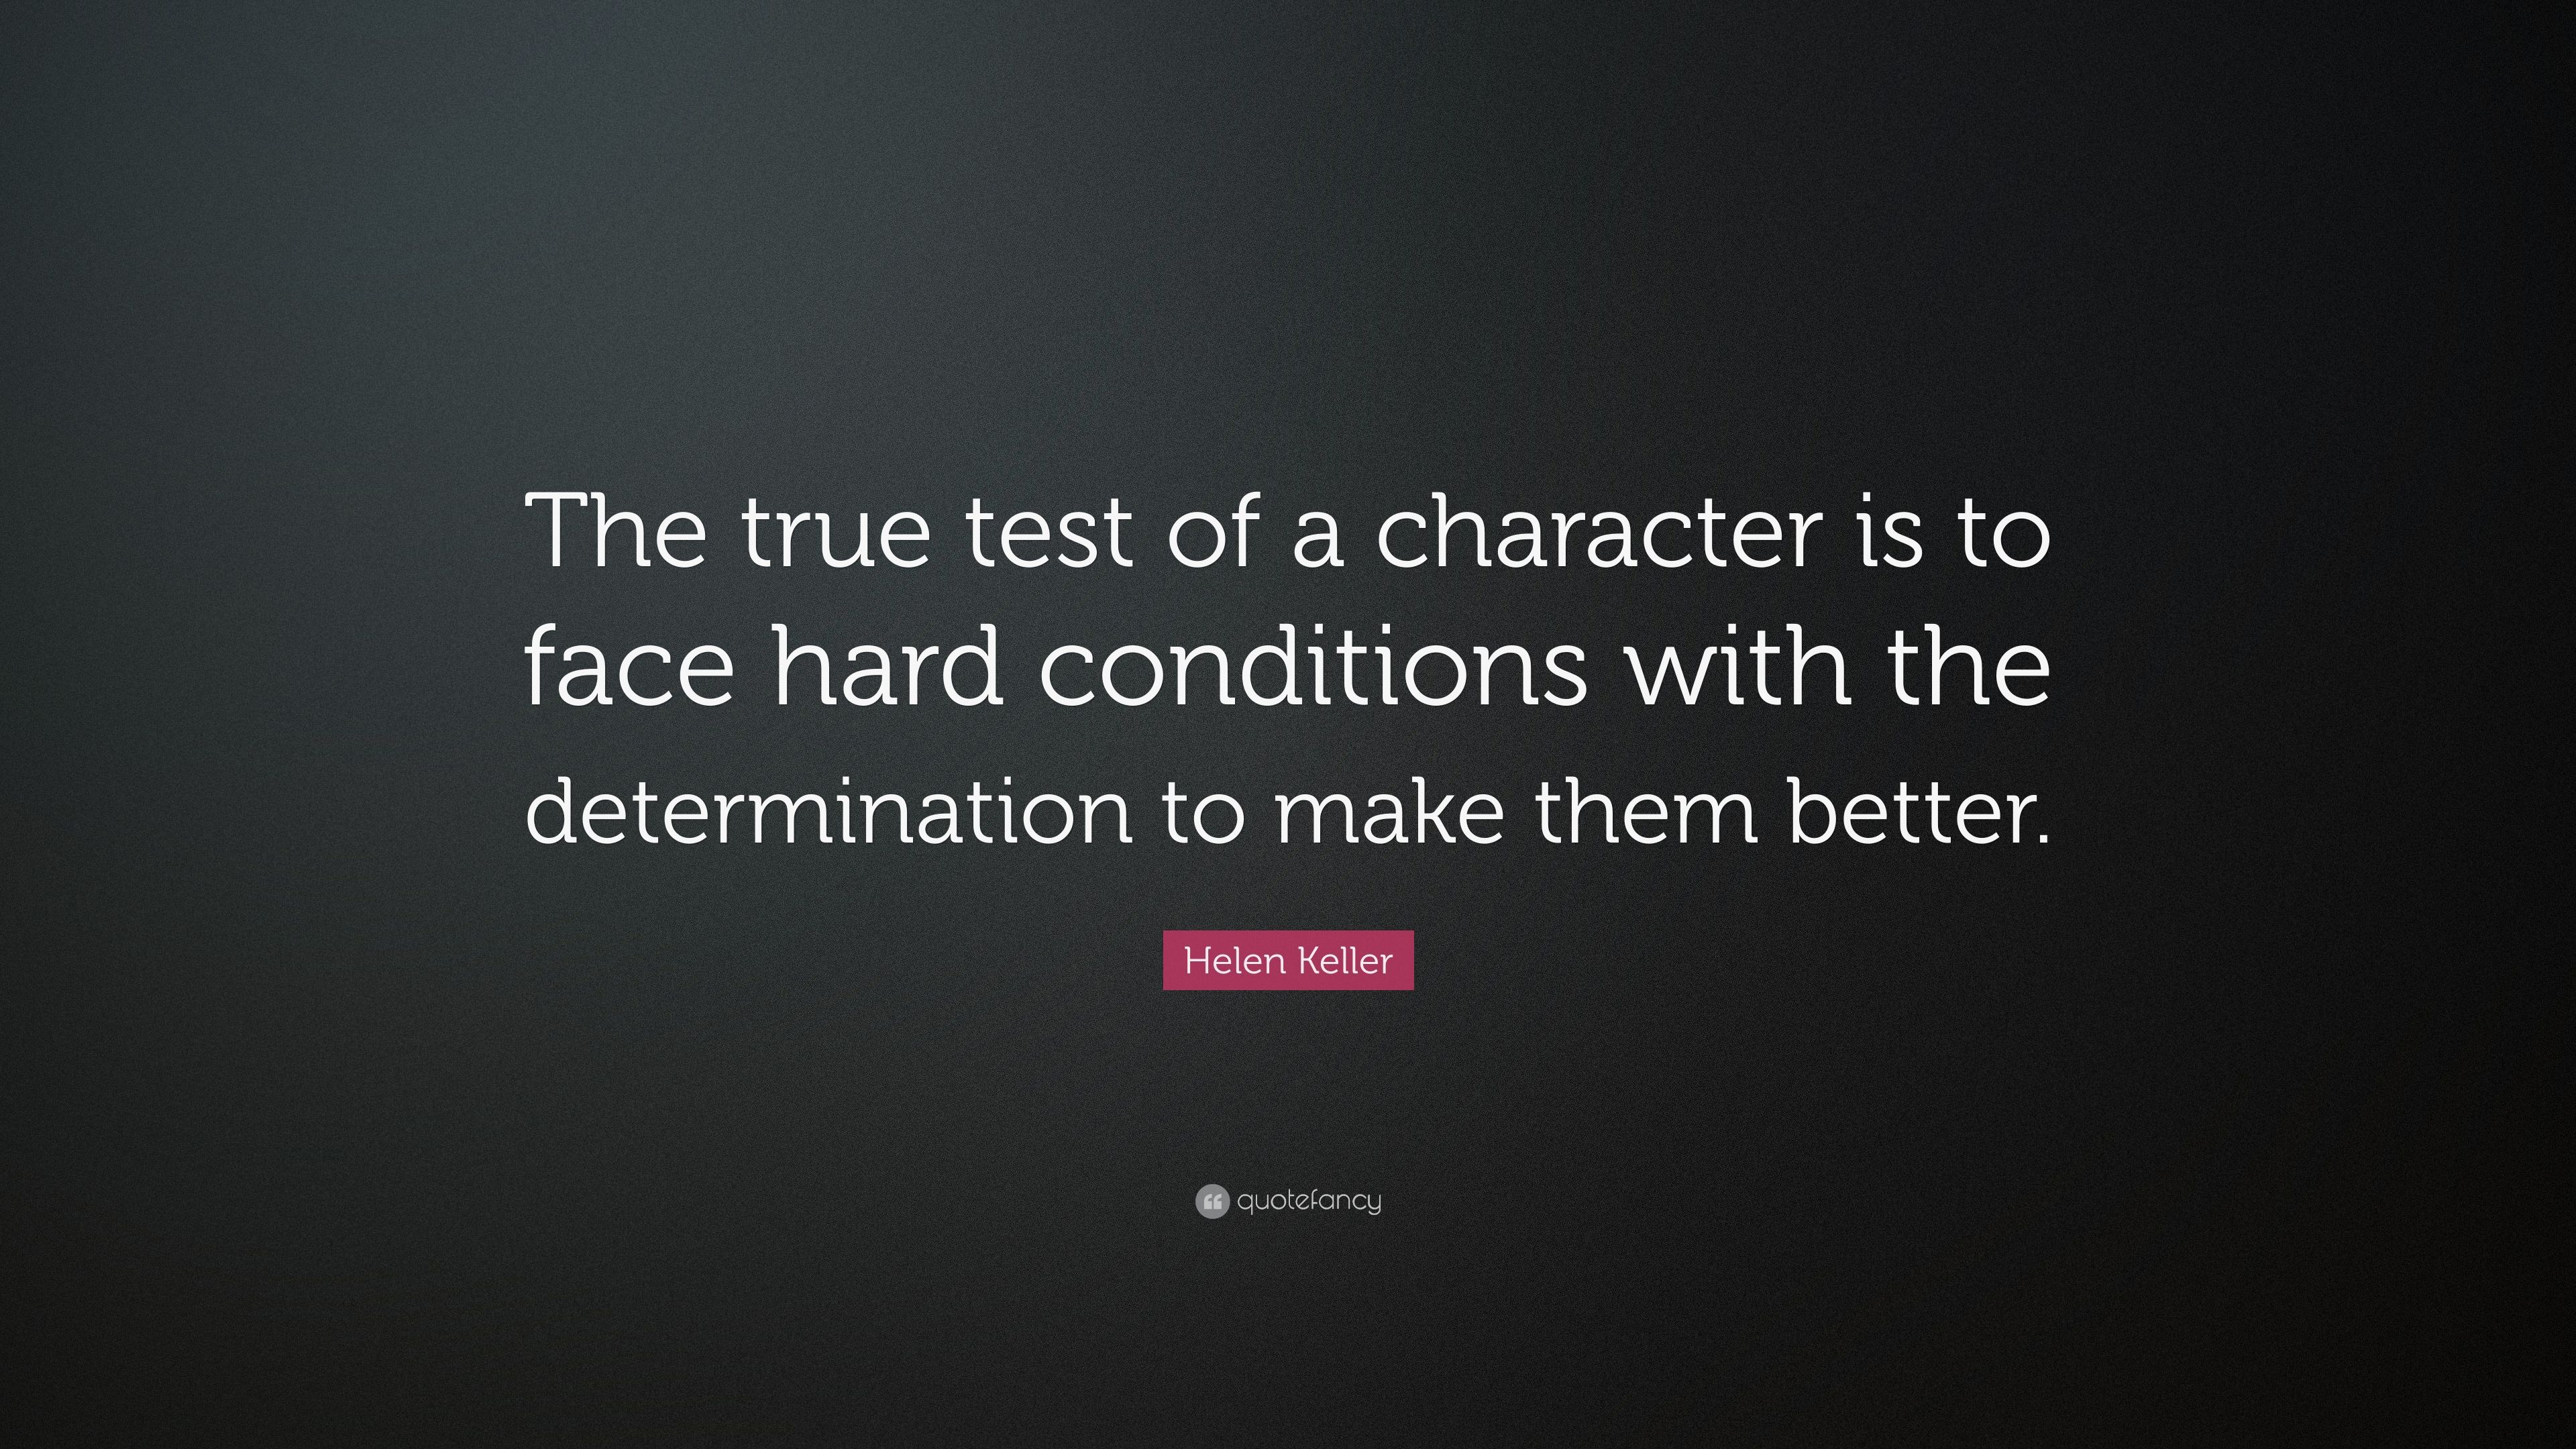 Helen keller quote the true test of a character is to face hard helen keller quote the true test of a character is to face hard conditions altavistaventures Image collections